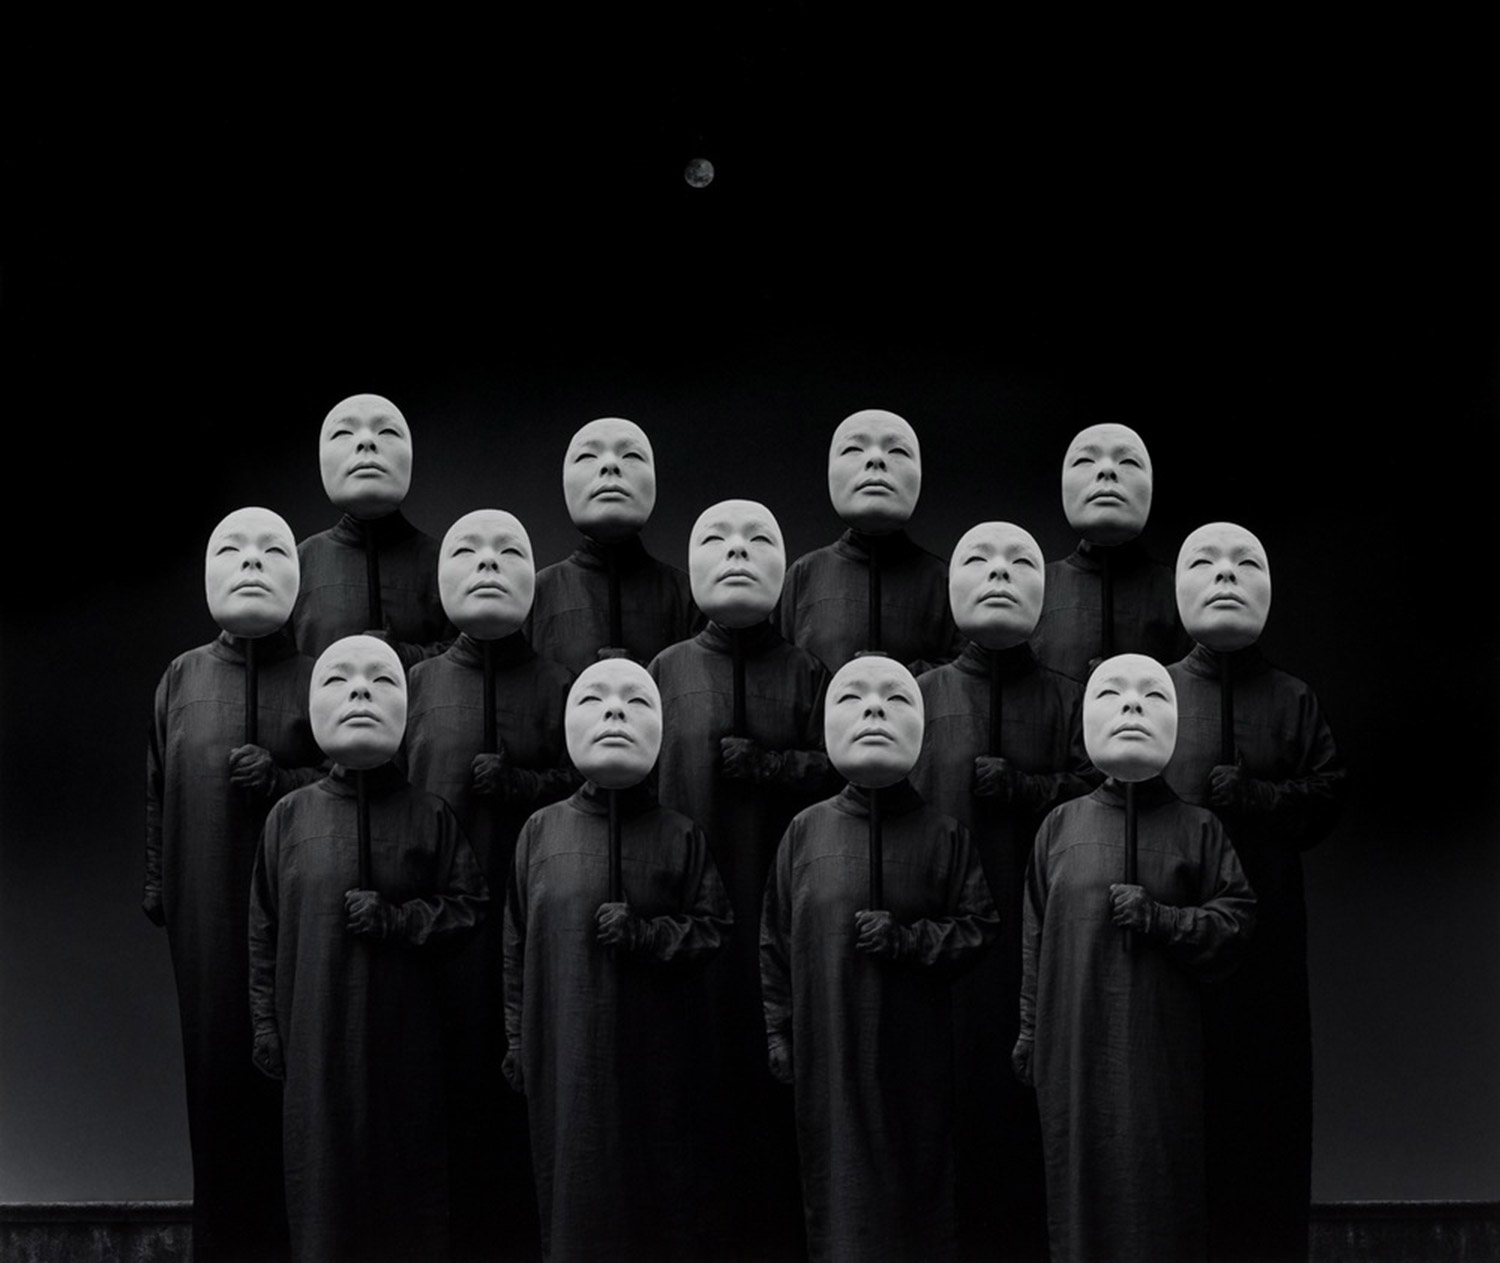 Misha Gordin - masked crowd